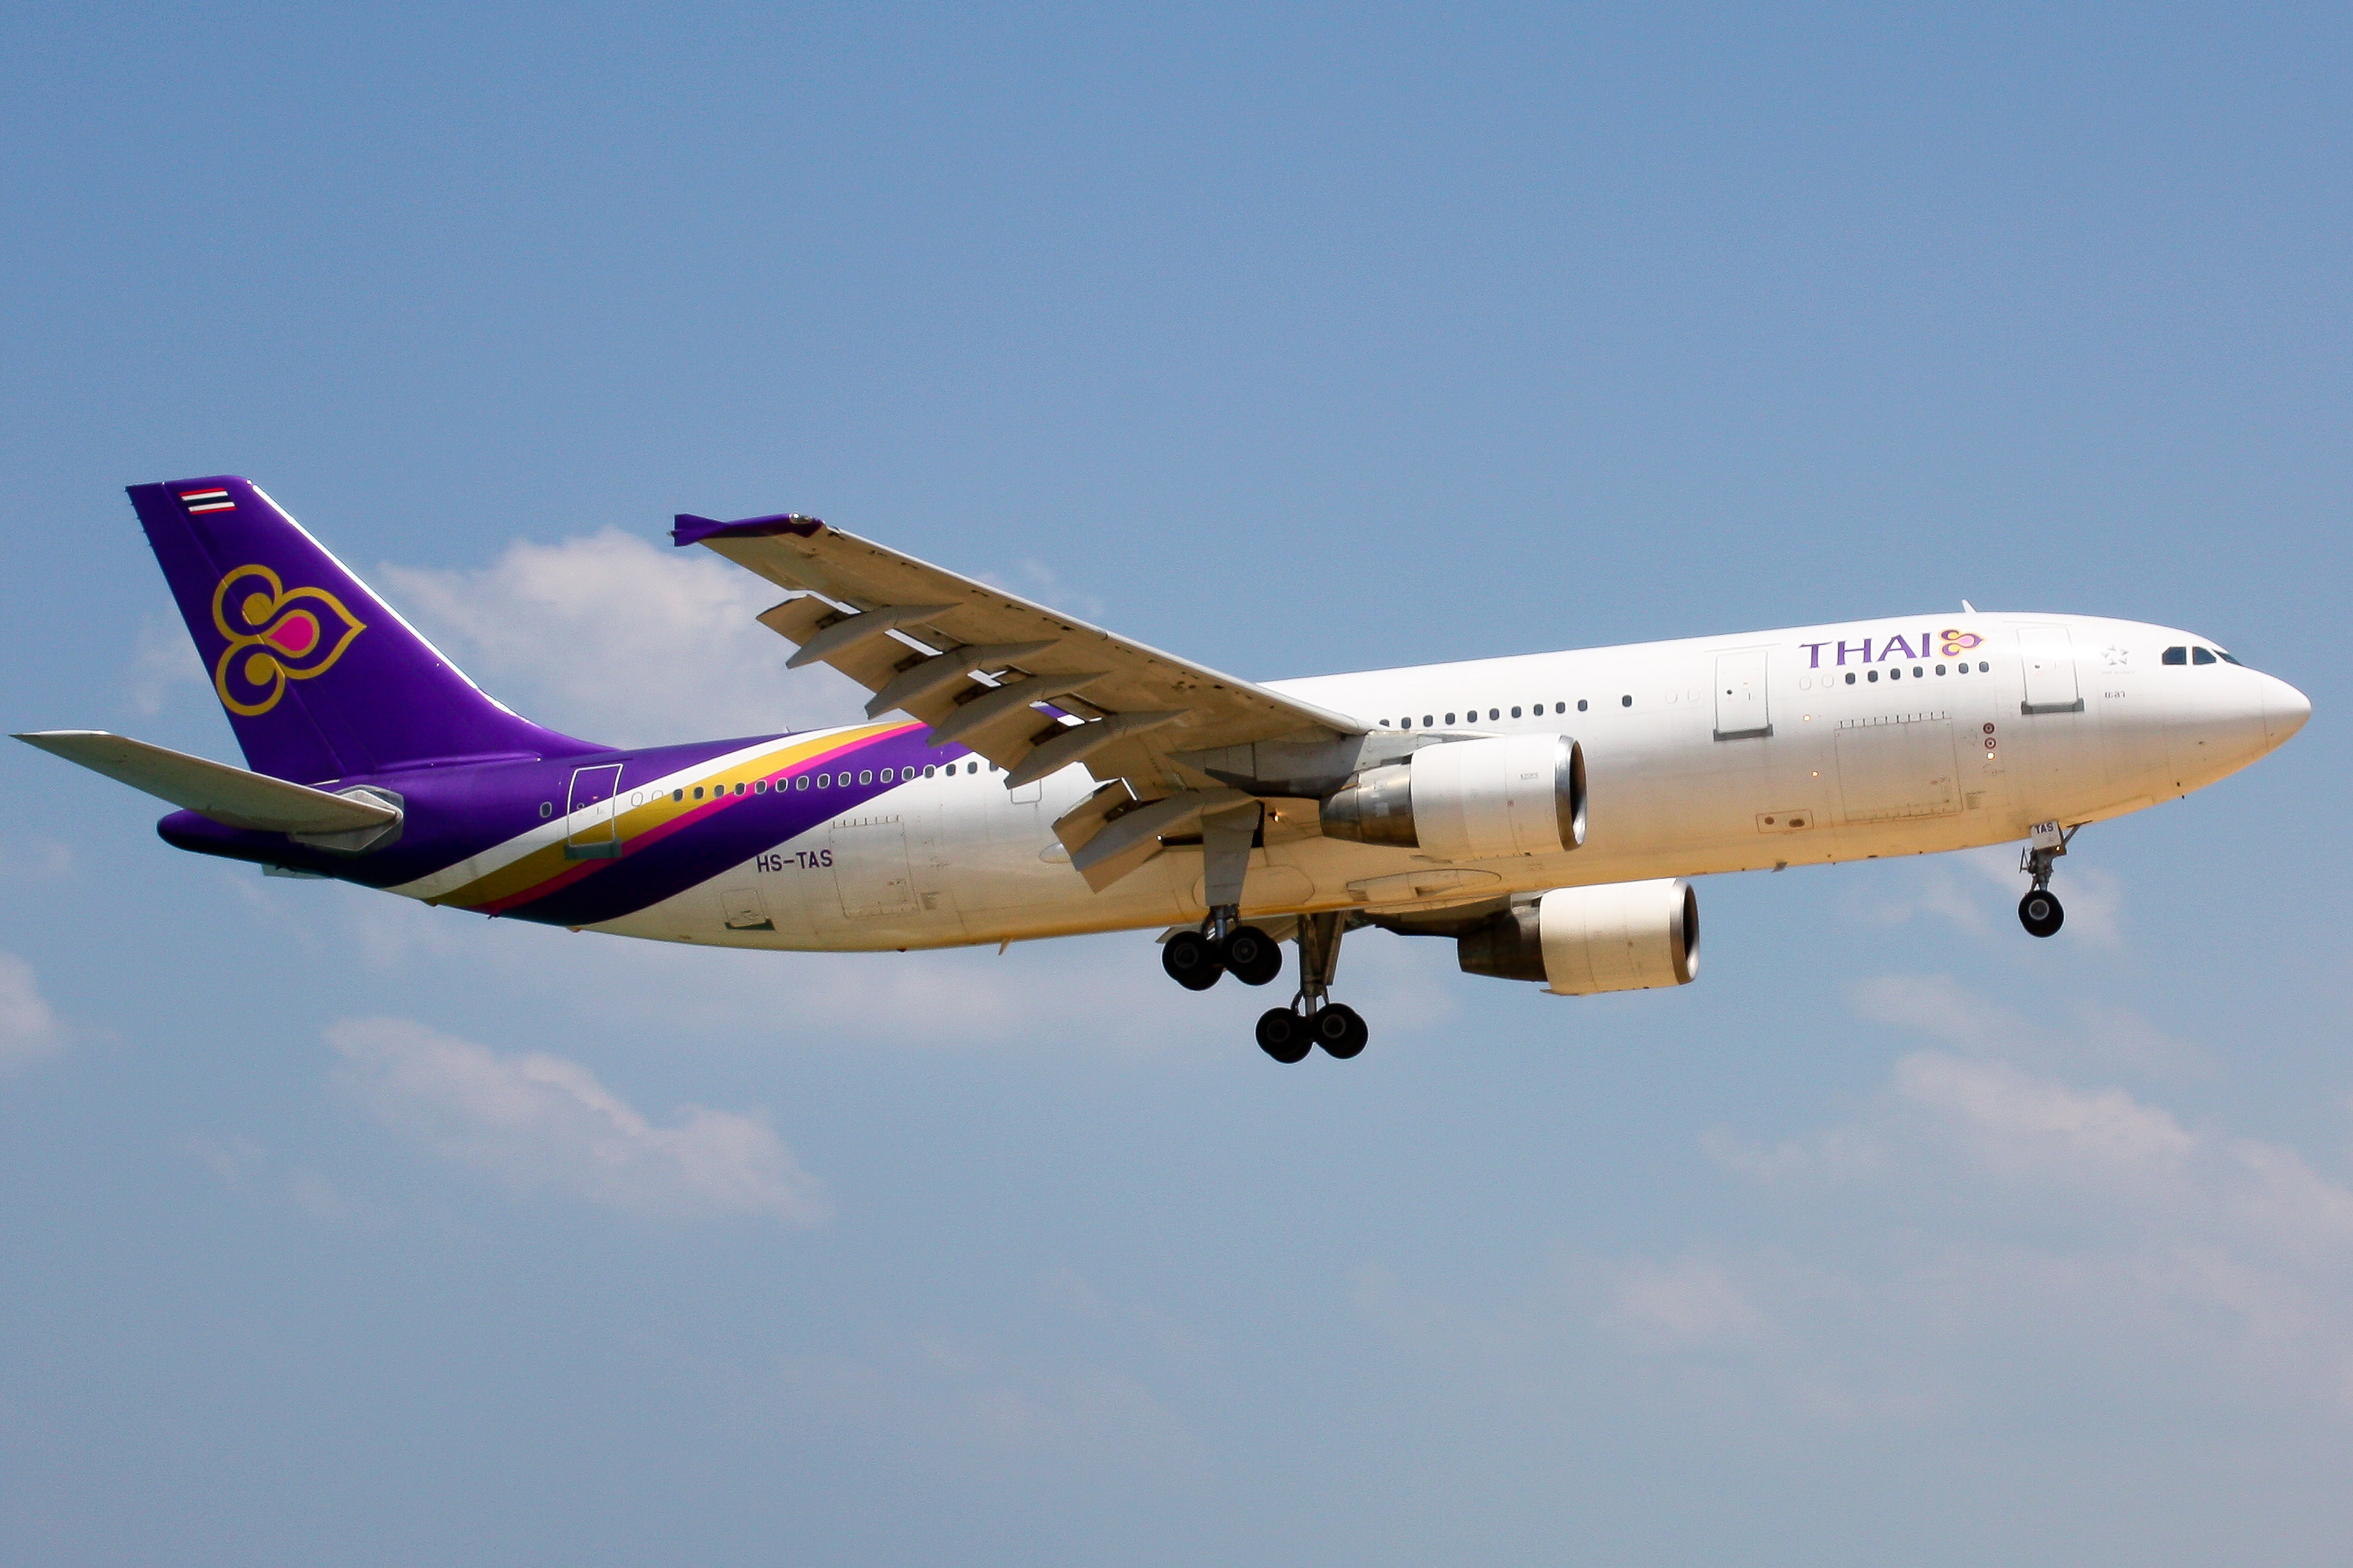 Download this Description Thai Airways Tas picture